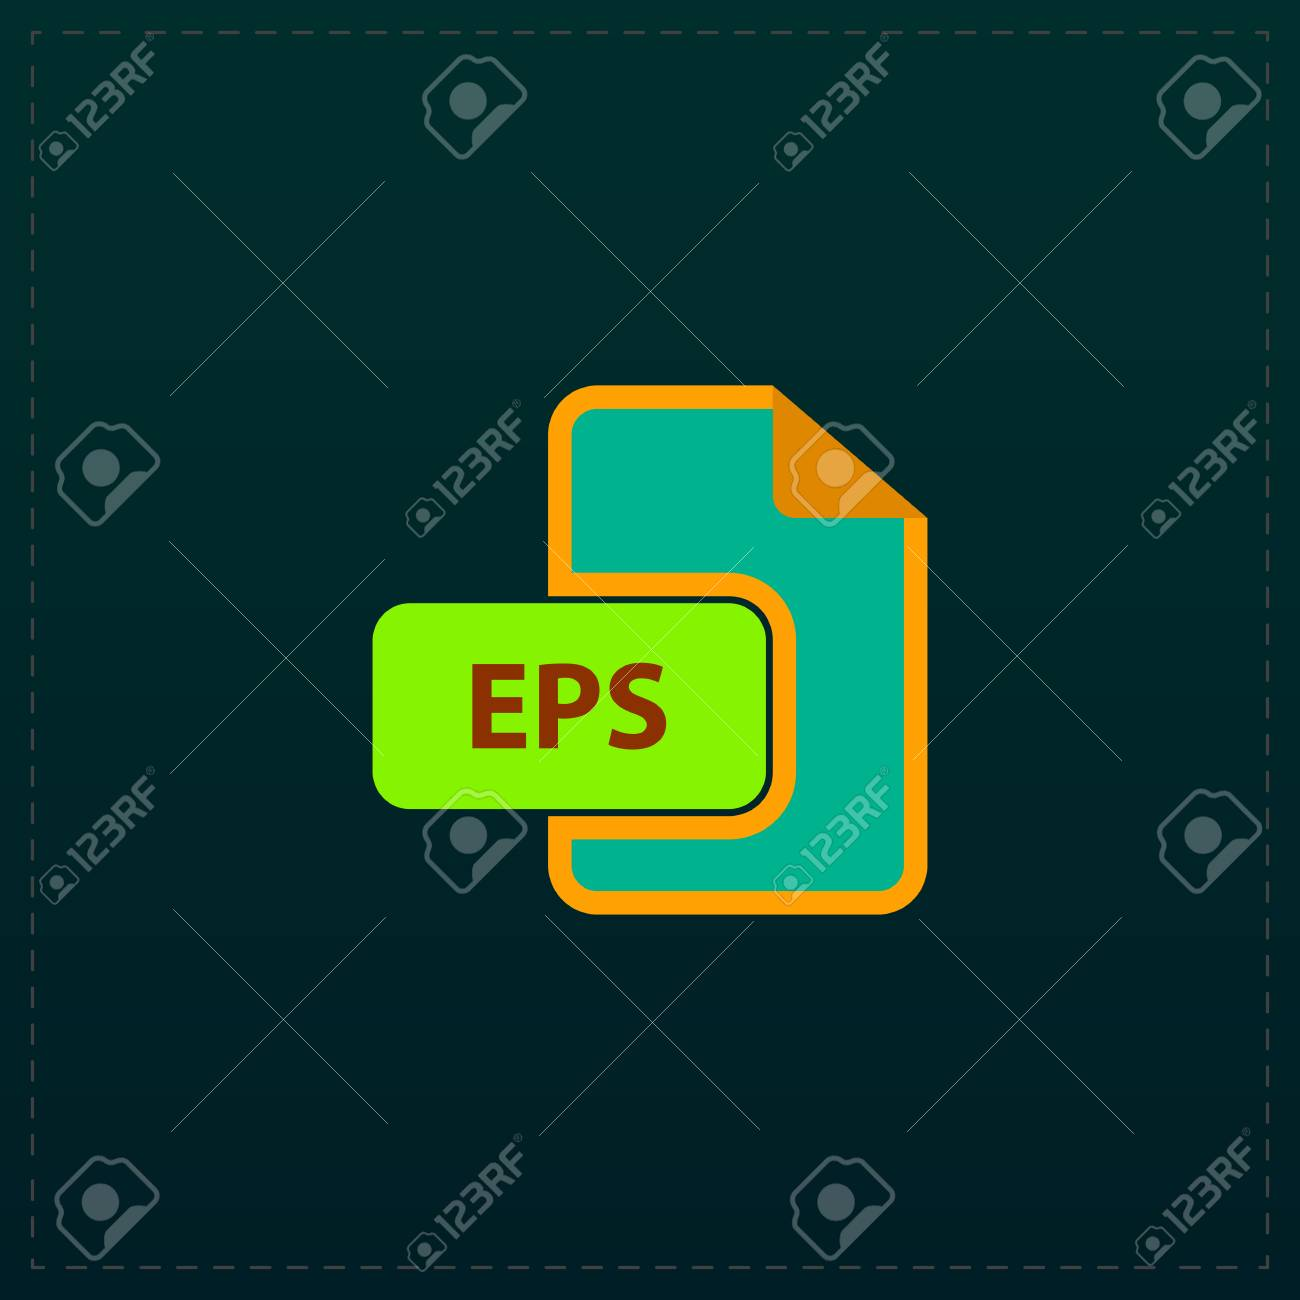 eps vector file extension color symbol icon on black background